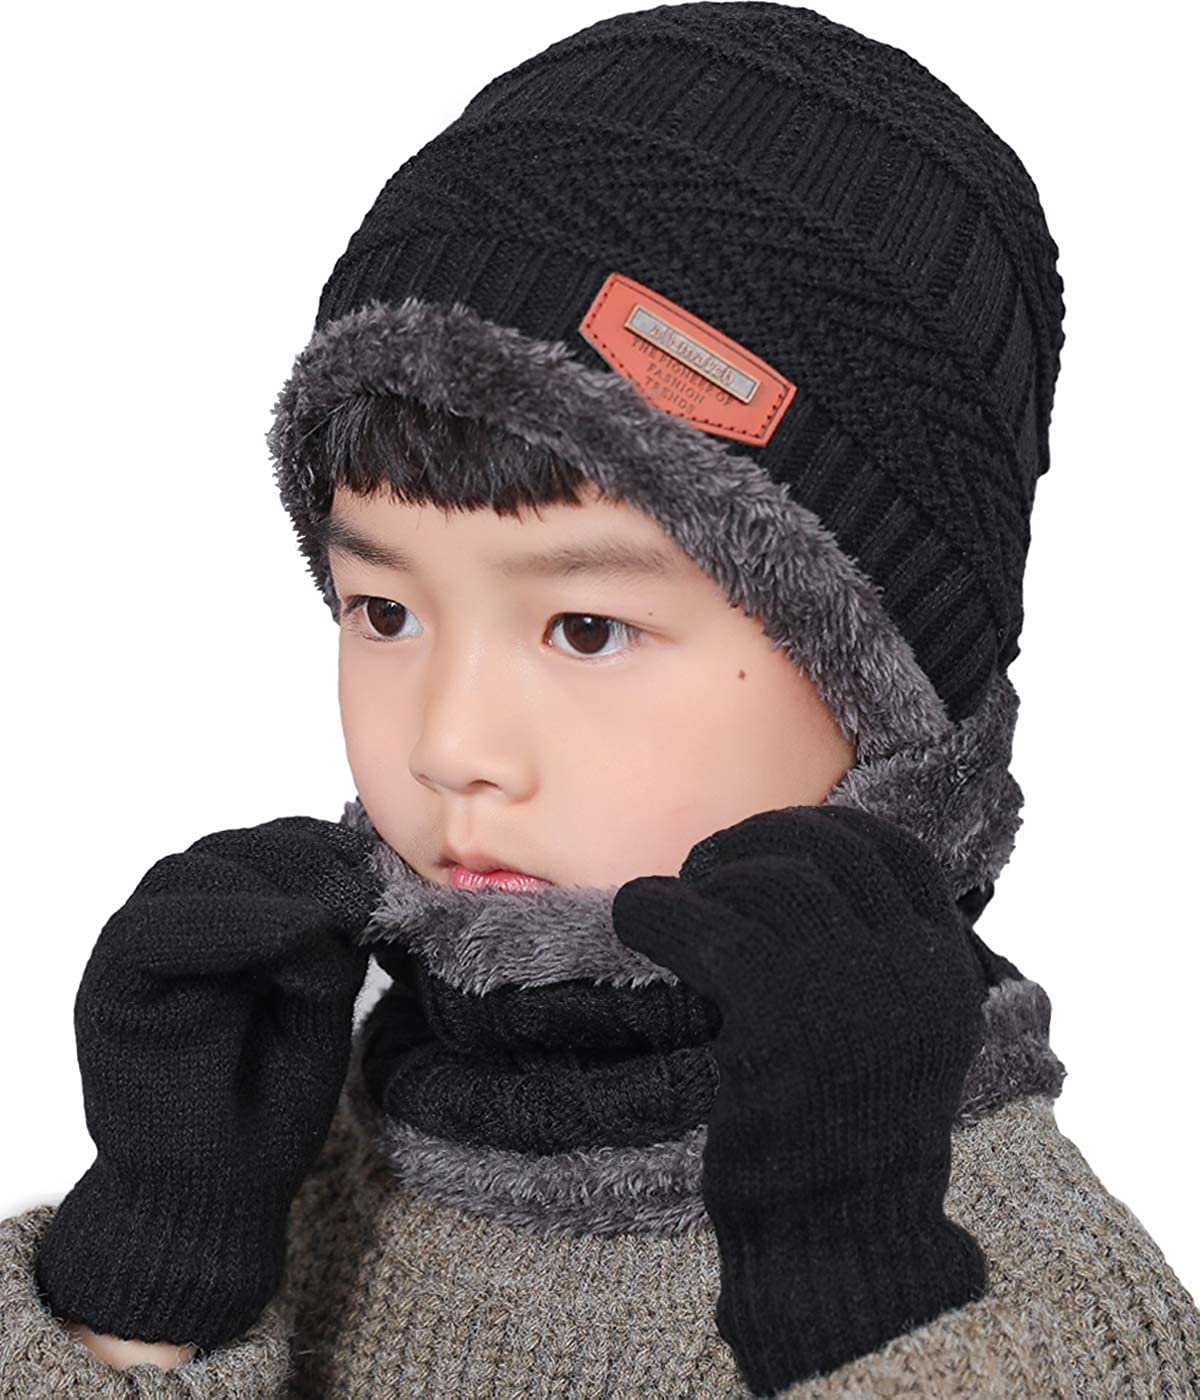 Winter Warm Knit Set Beanie Hat Knitted Stretch Gloves Knit Thick Warm Fleece Lined Thermal Hat Gloves for Kids Children